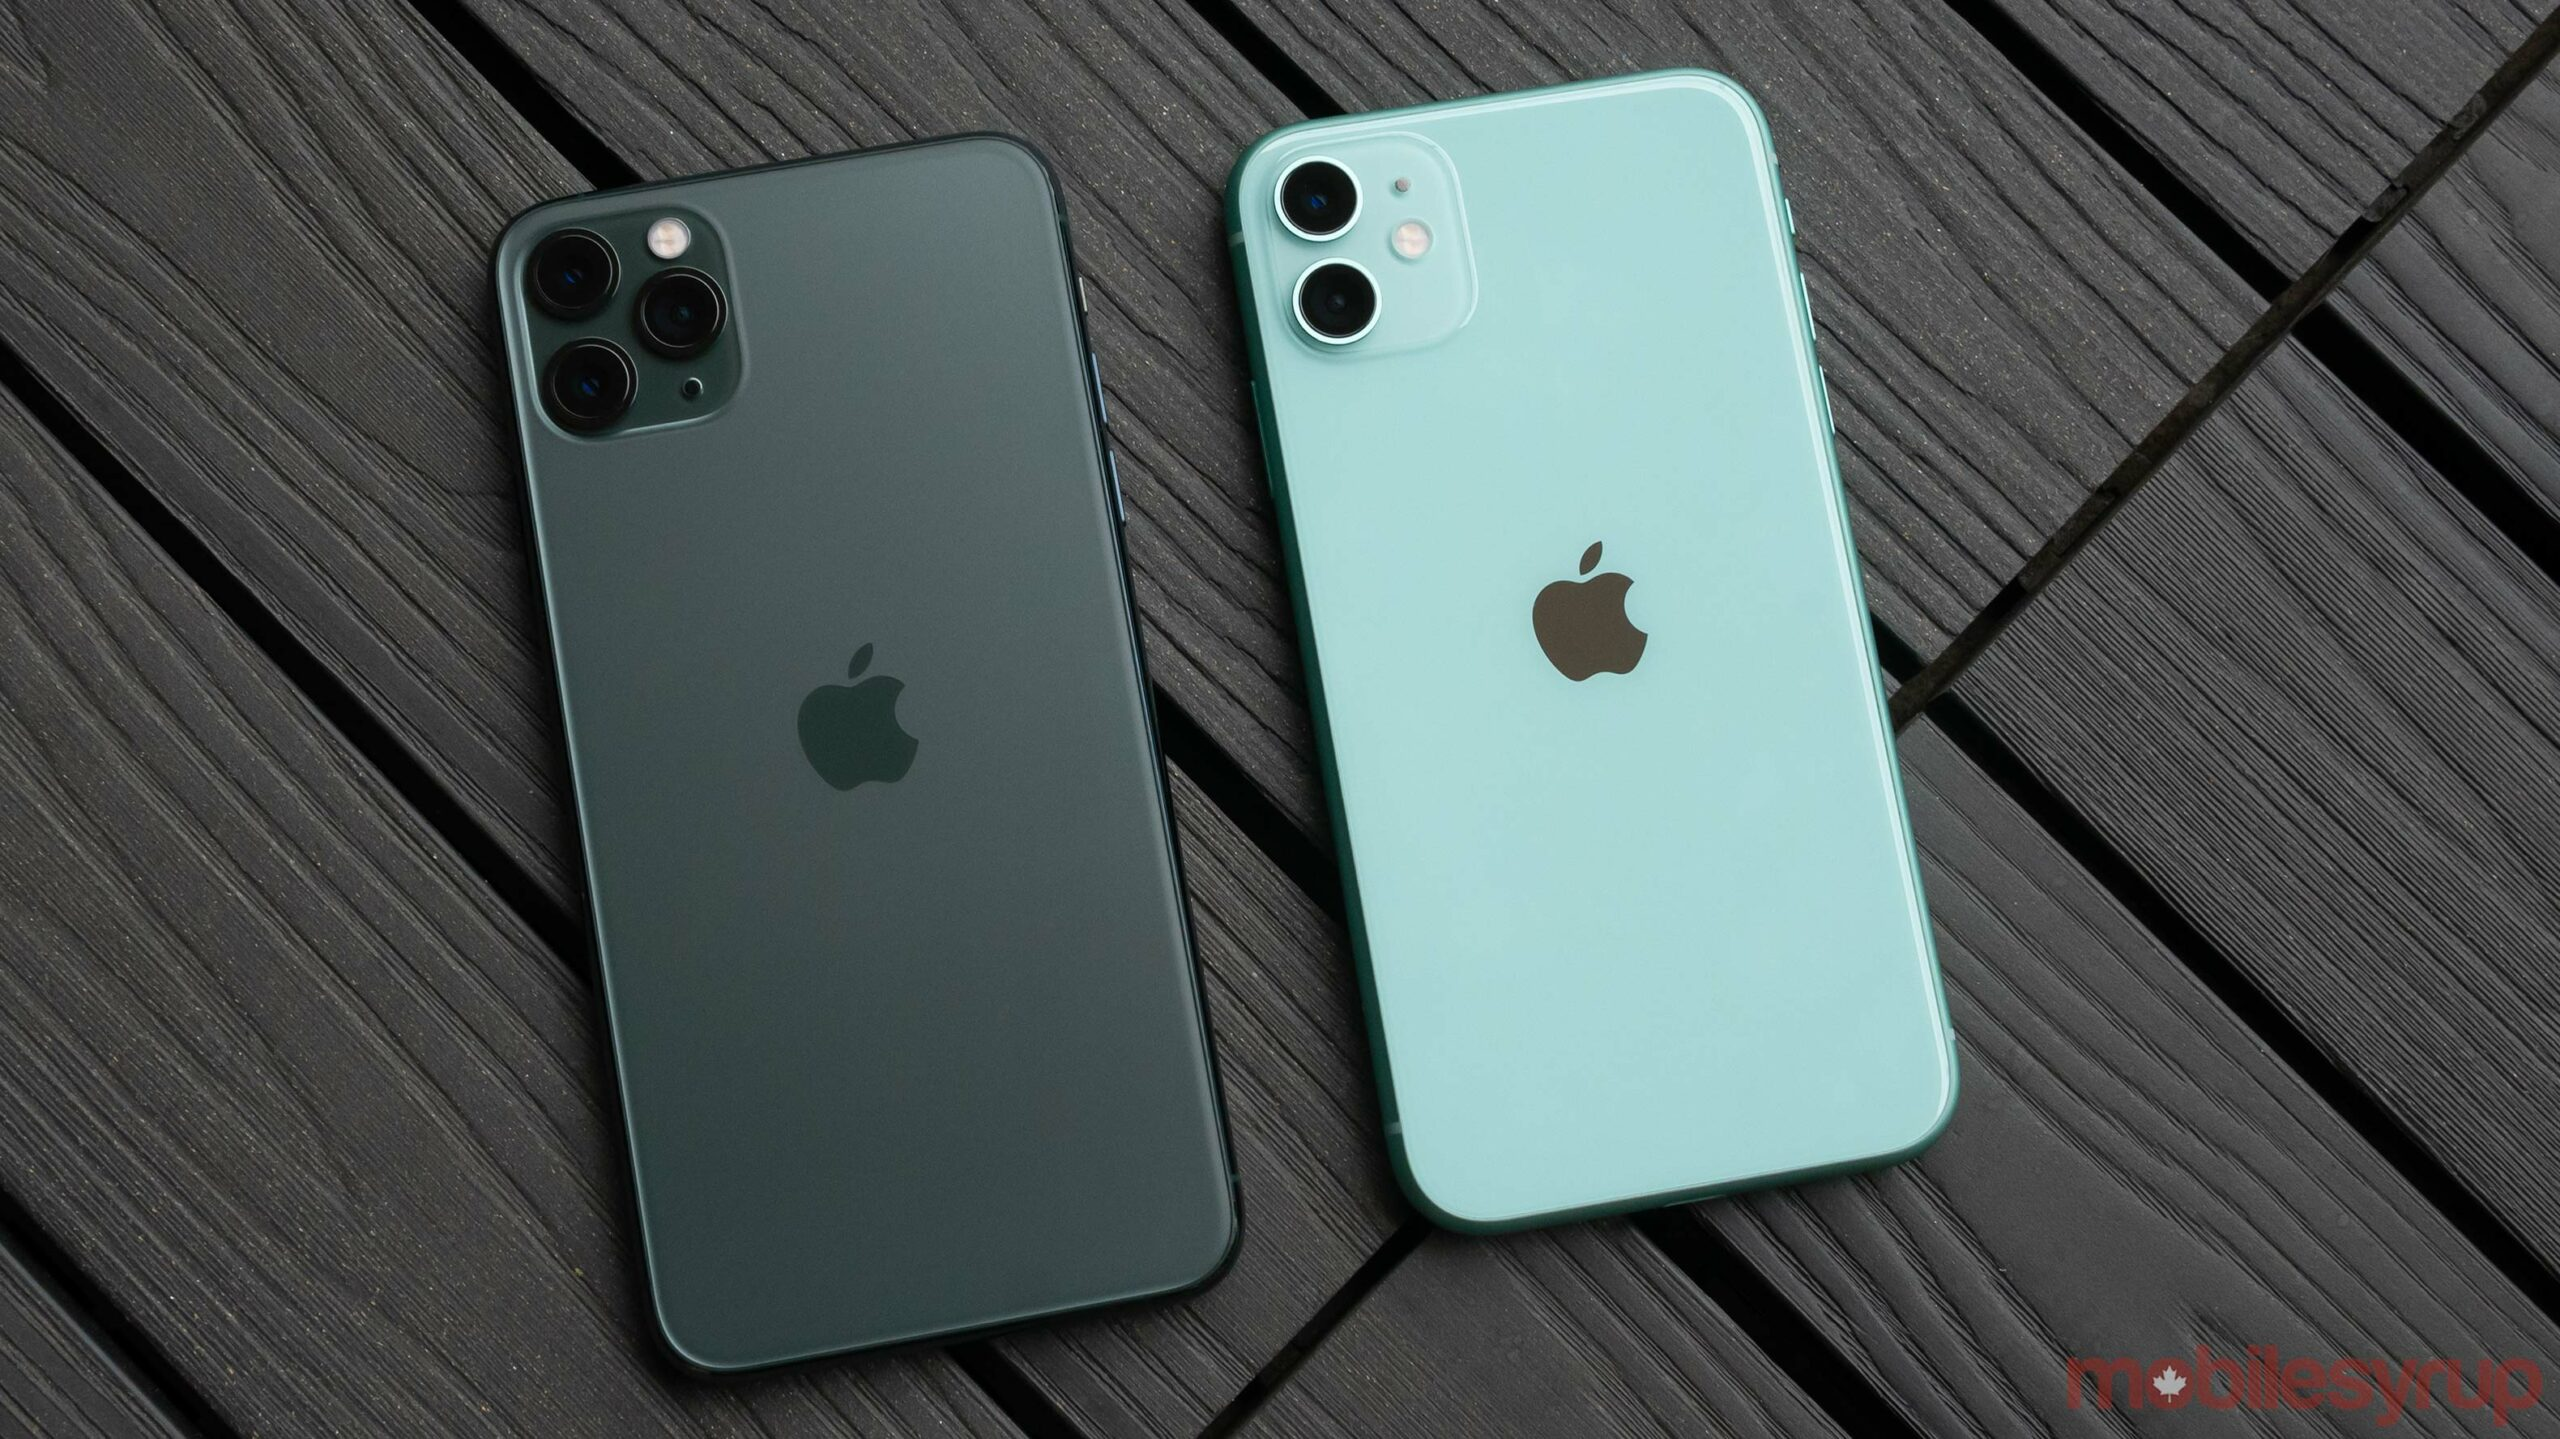 iPhone 11 and iPhone 11 Pro